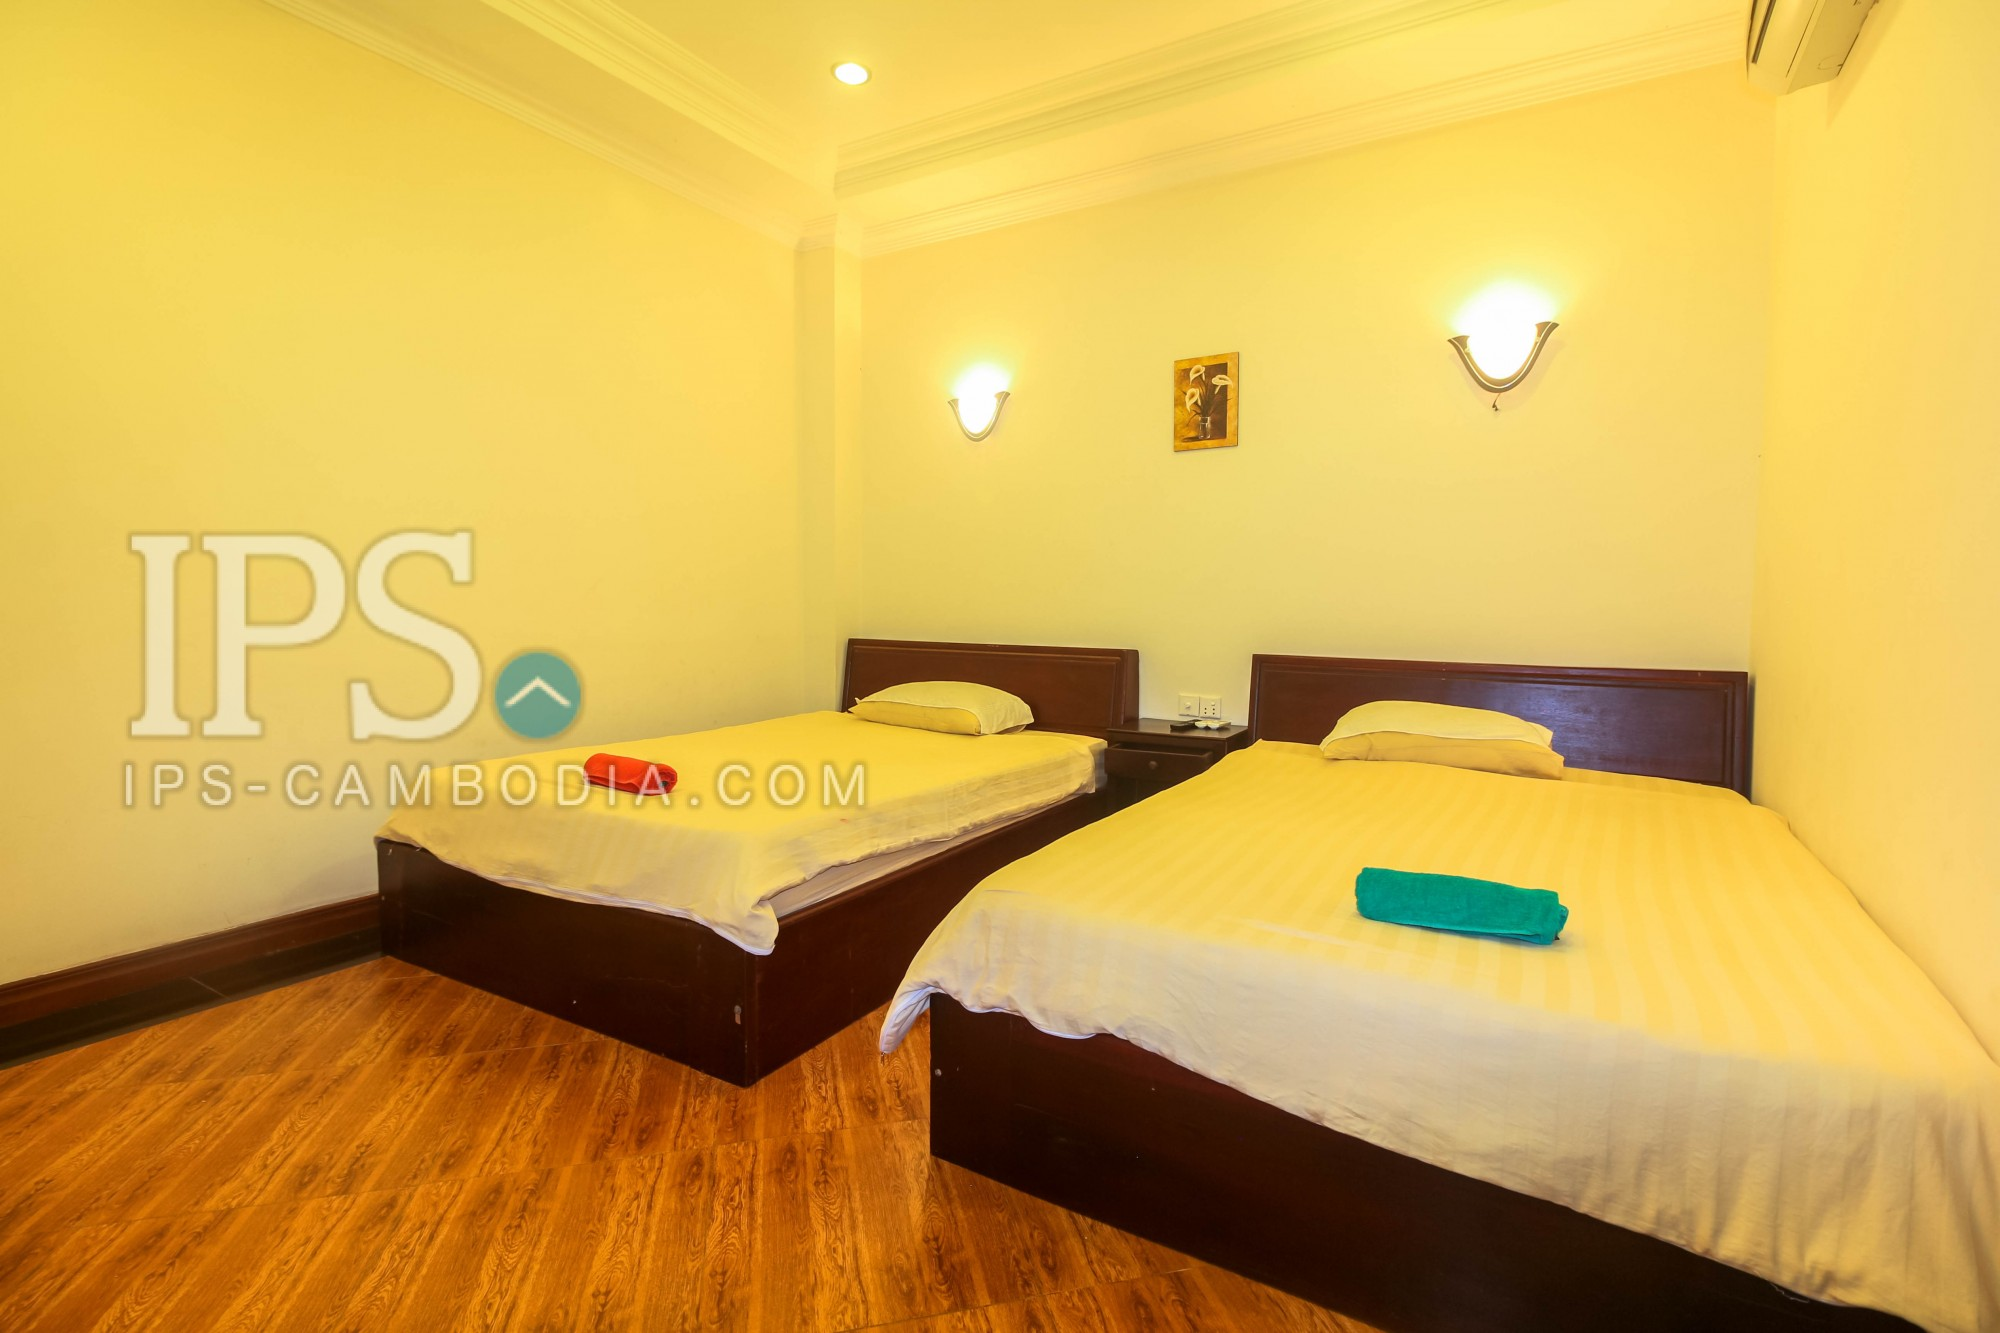 2 Bedrooms Apartment  For Rent - Sra Ngae, Siem Reap